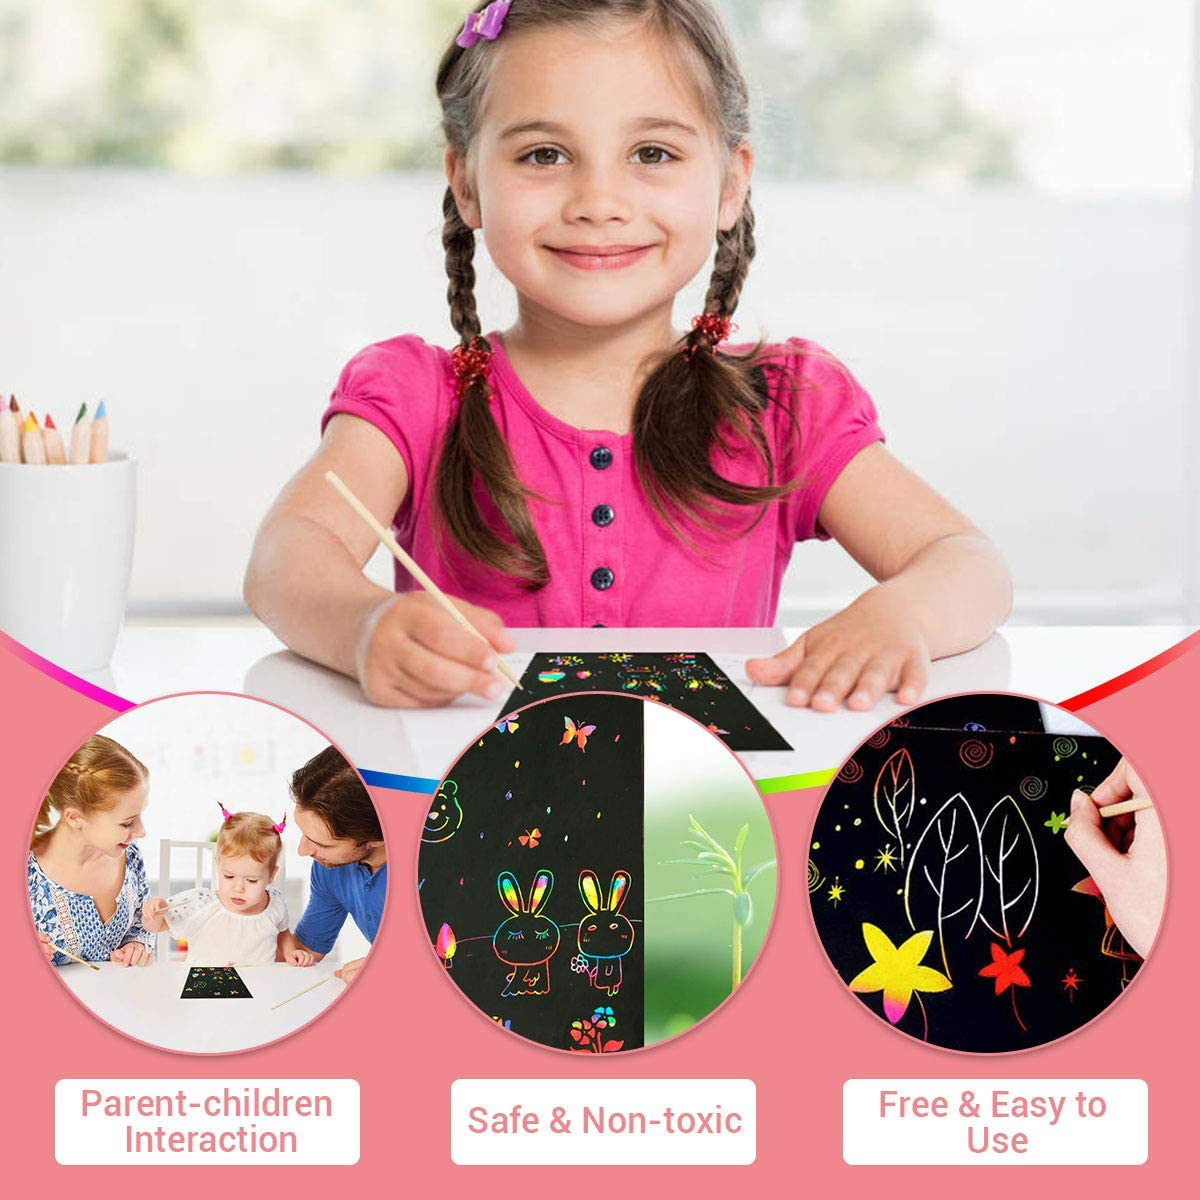 Luclay Scratch Paper Art Set 156 Piece Rainbow Magic Scratch Paper for Kids Black Scratch it Off Art Crafts Notes Boards Sheet with 5 Wooden Stylus for Easter Party Game Christmas Birthday Gift